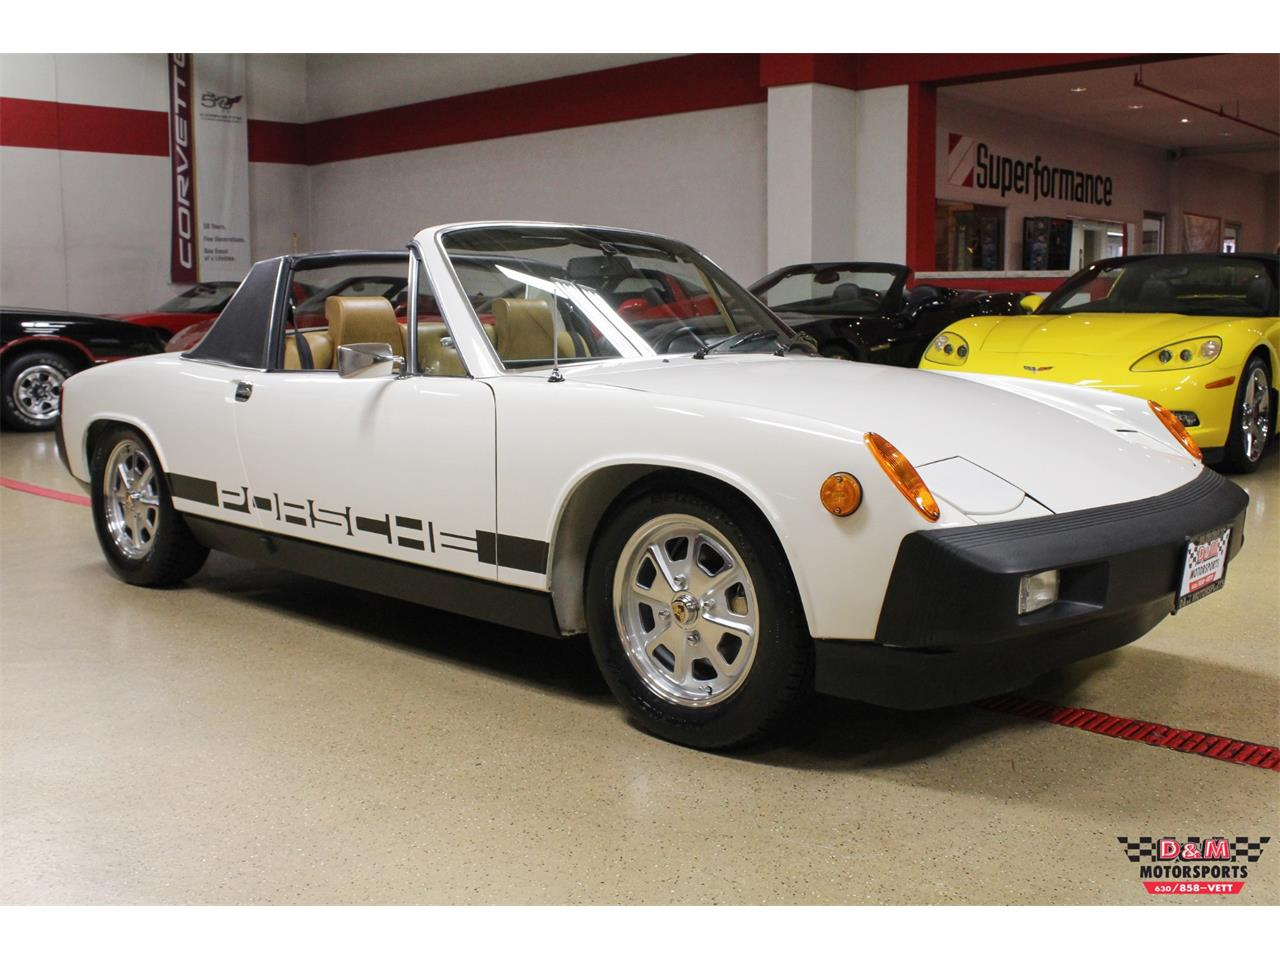 Large Picture of '76 Porsche 914 located in Illinois - $29,995.00 - P8QY